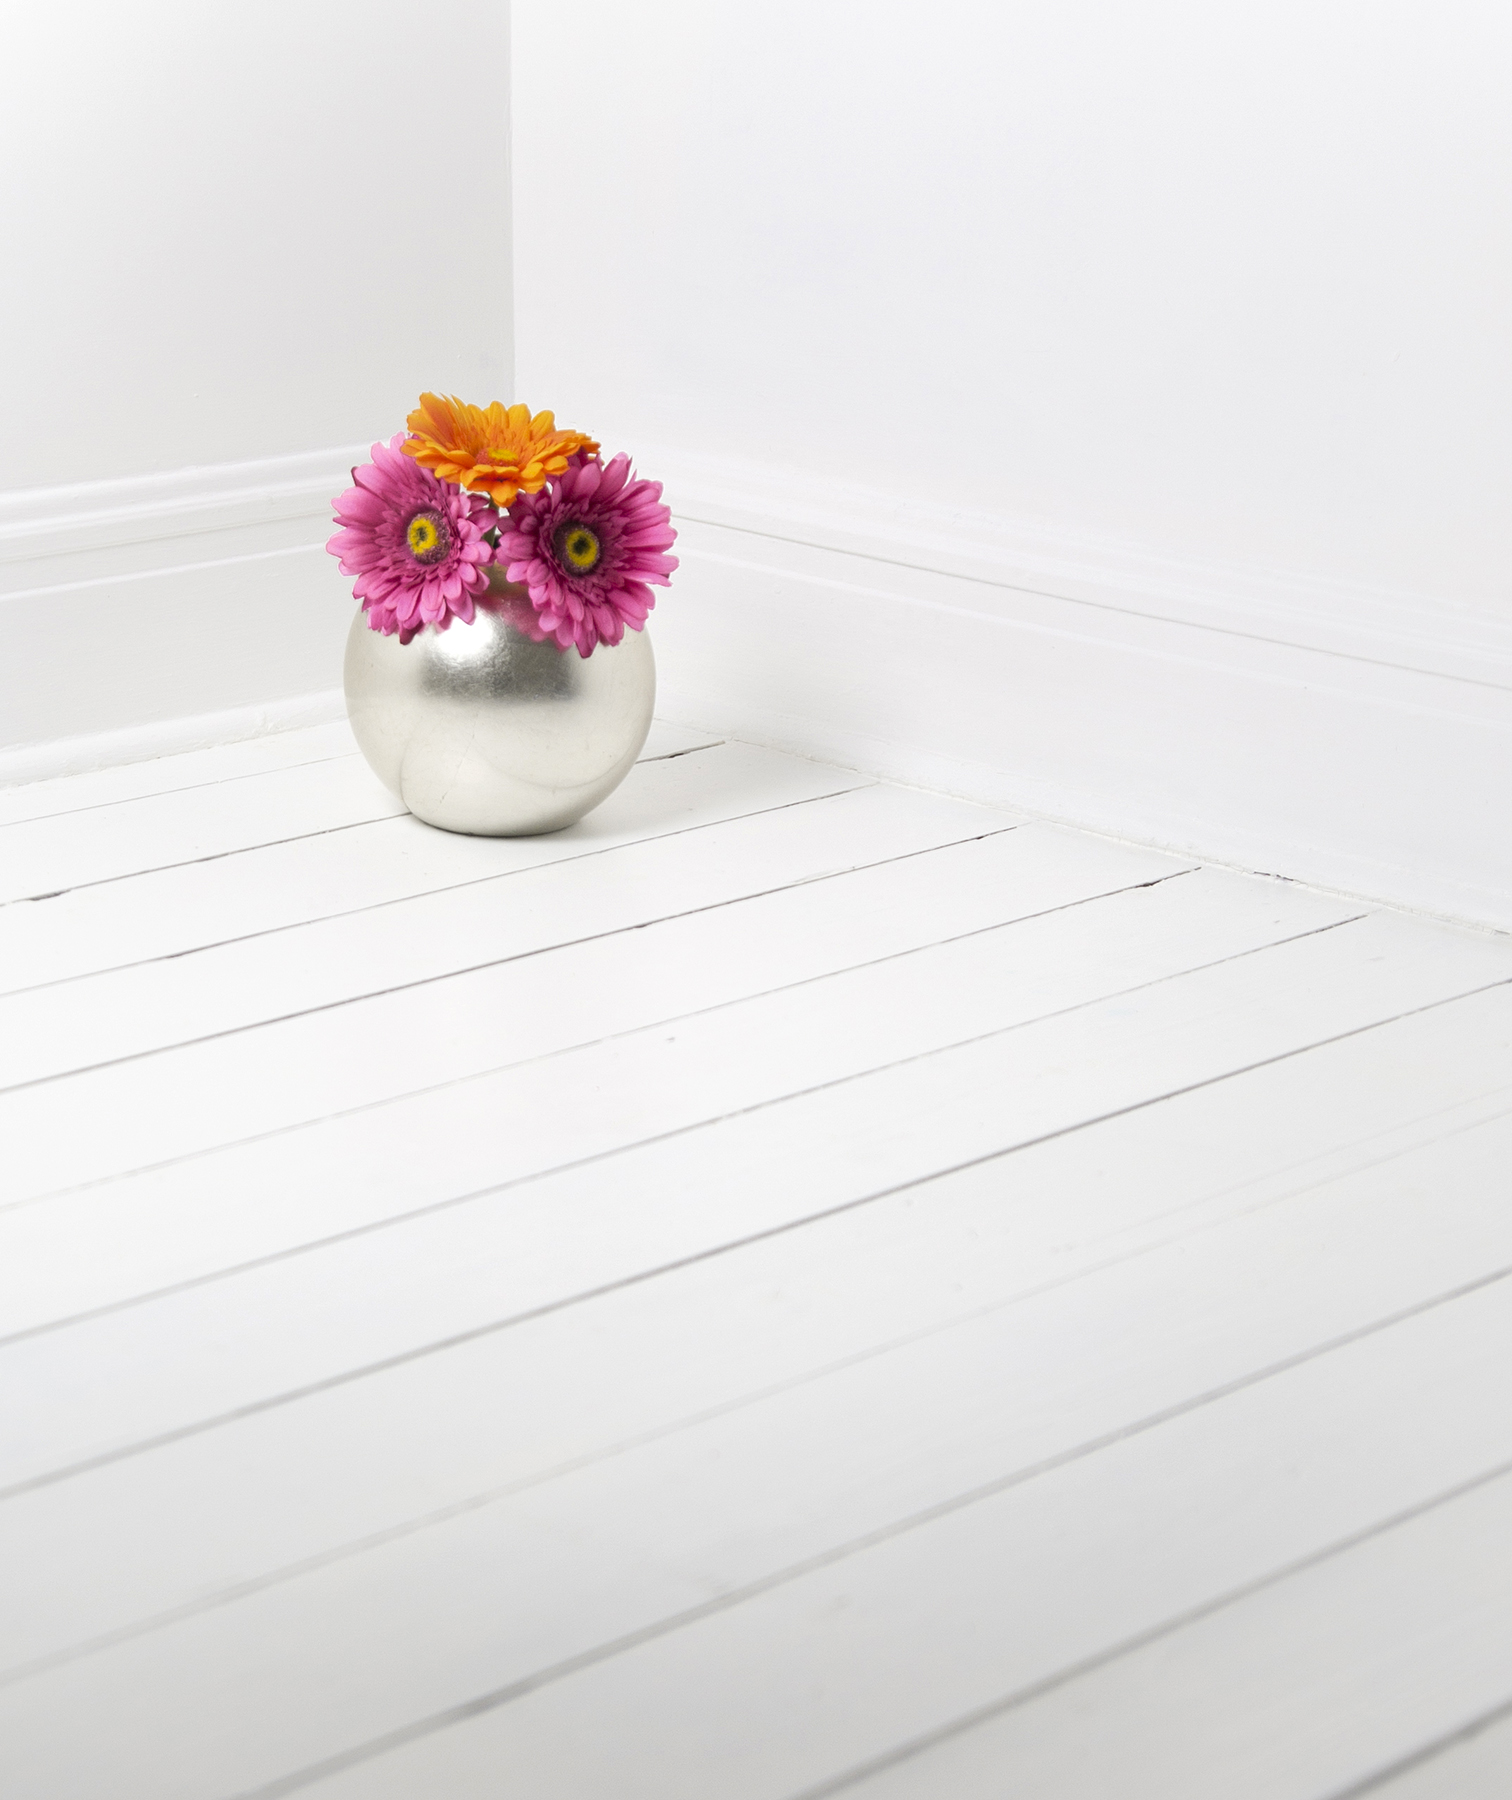 Vase of flowers on a white painted floor